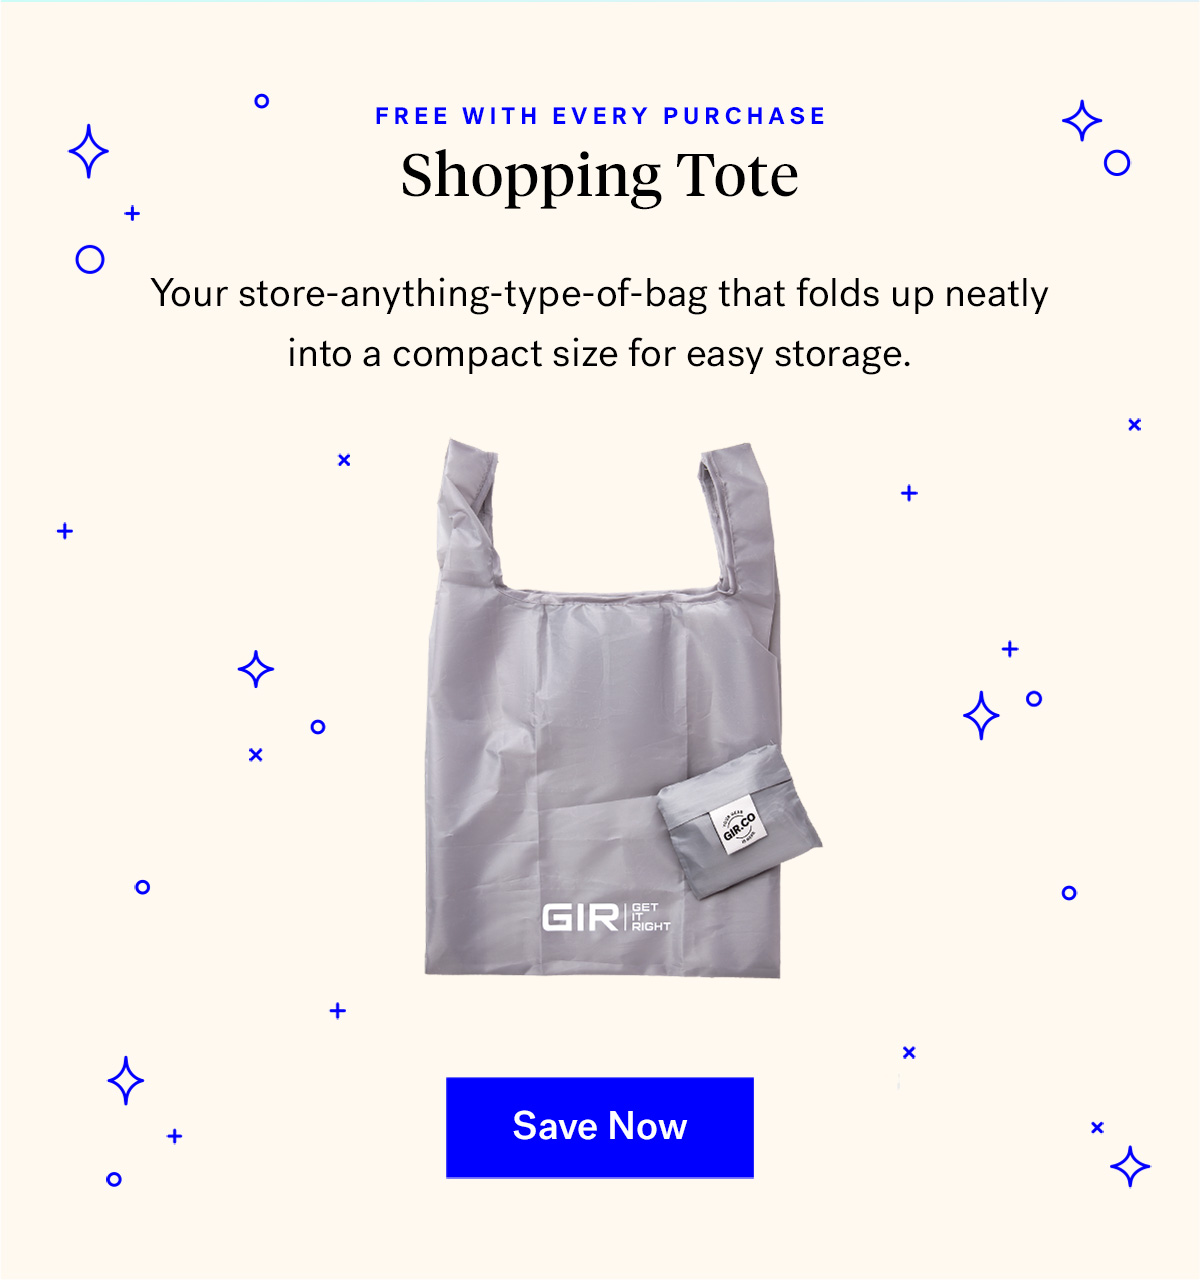 GIR Reusable Shopping Tote (badge for free with every purchase)